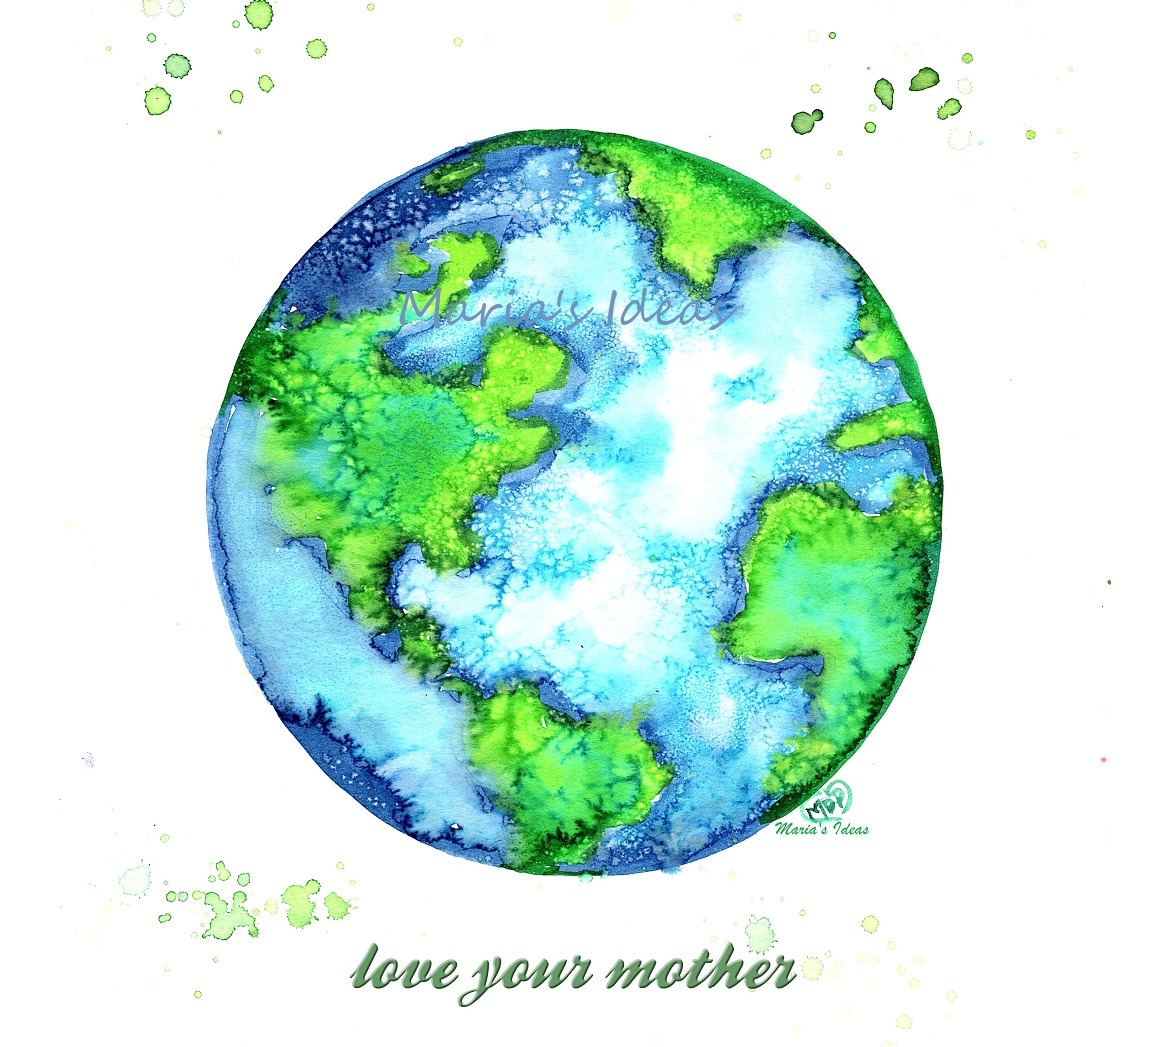 mother earth, earth art, environment, planet art, love your mother, eco art, save the planet